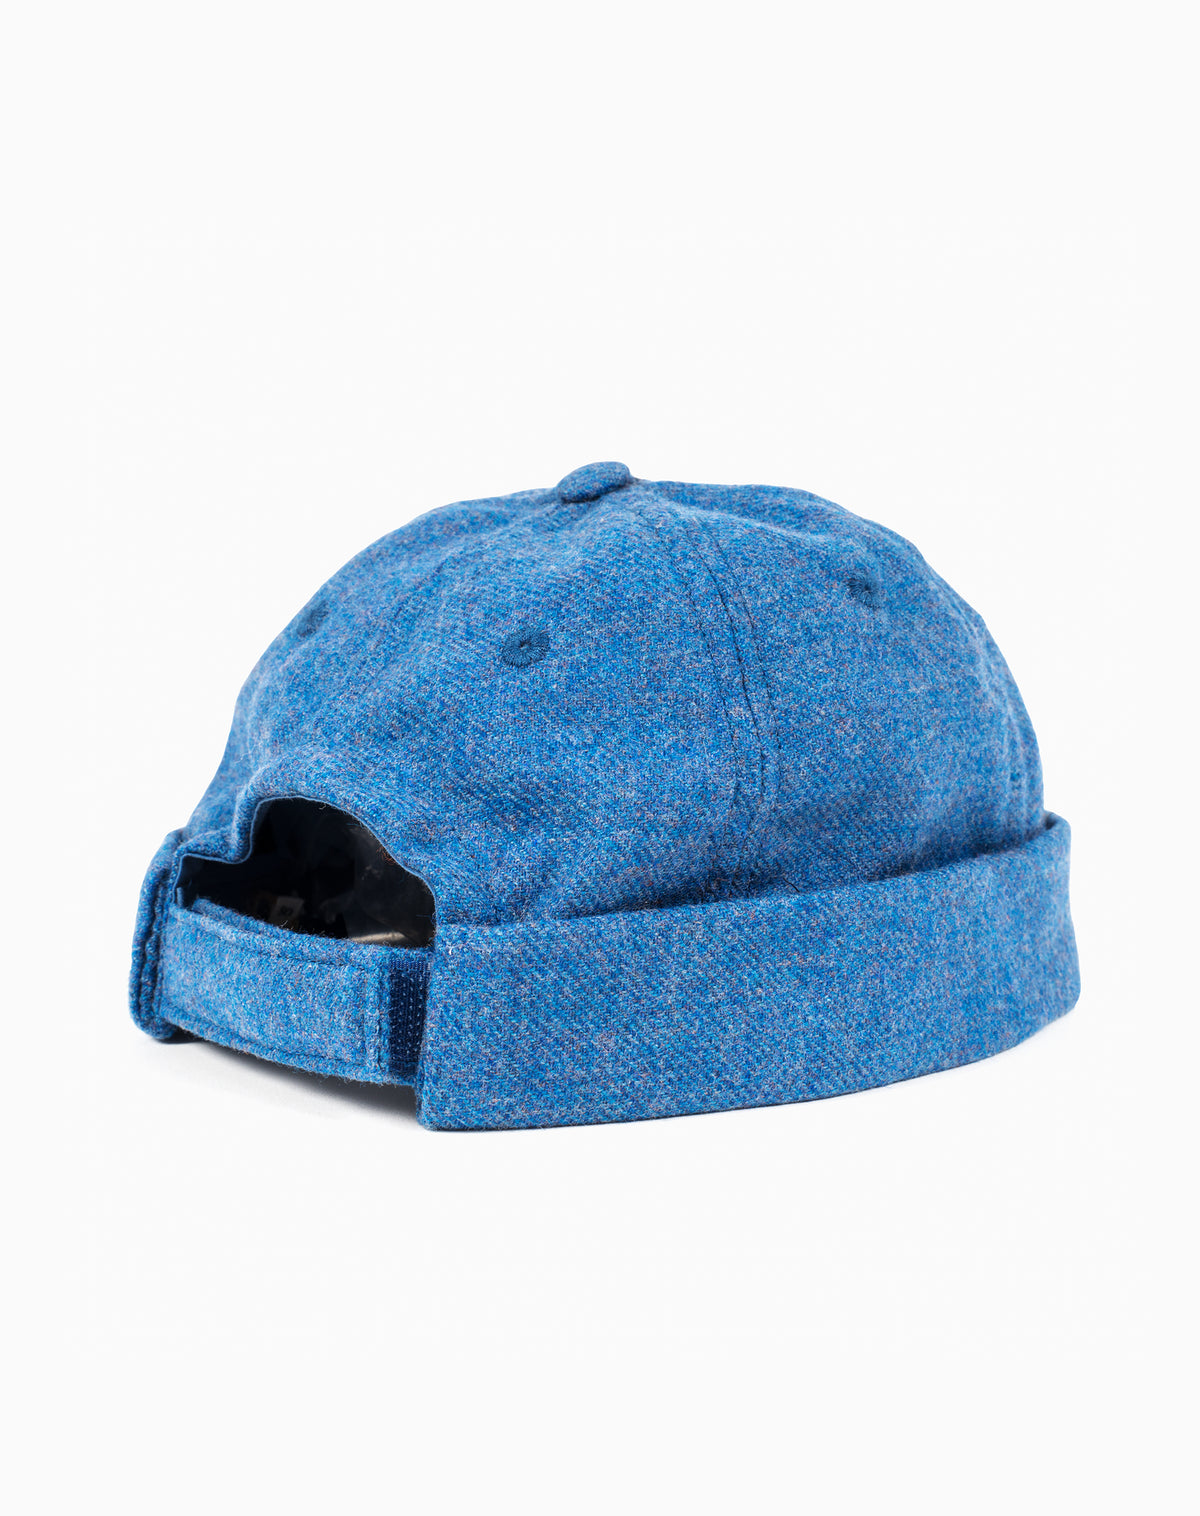 Harbour Cap in Denim